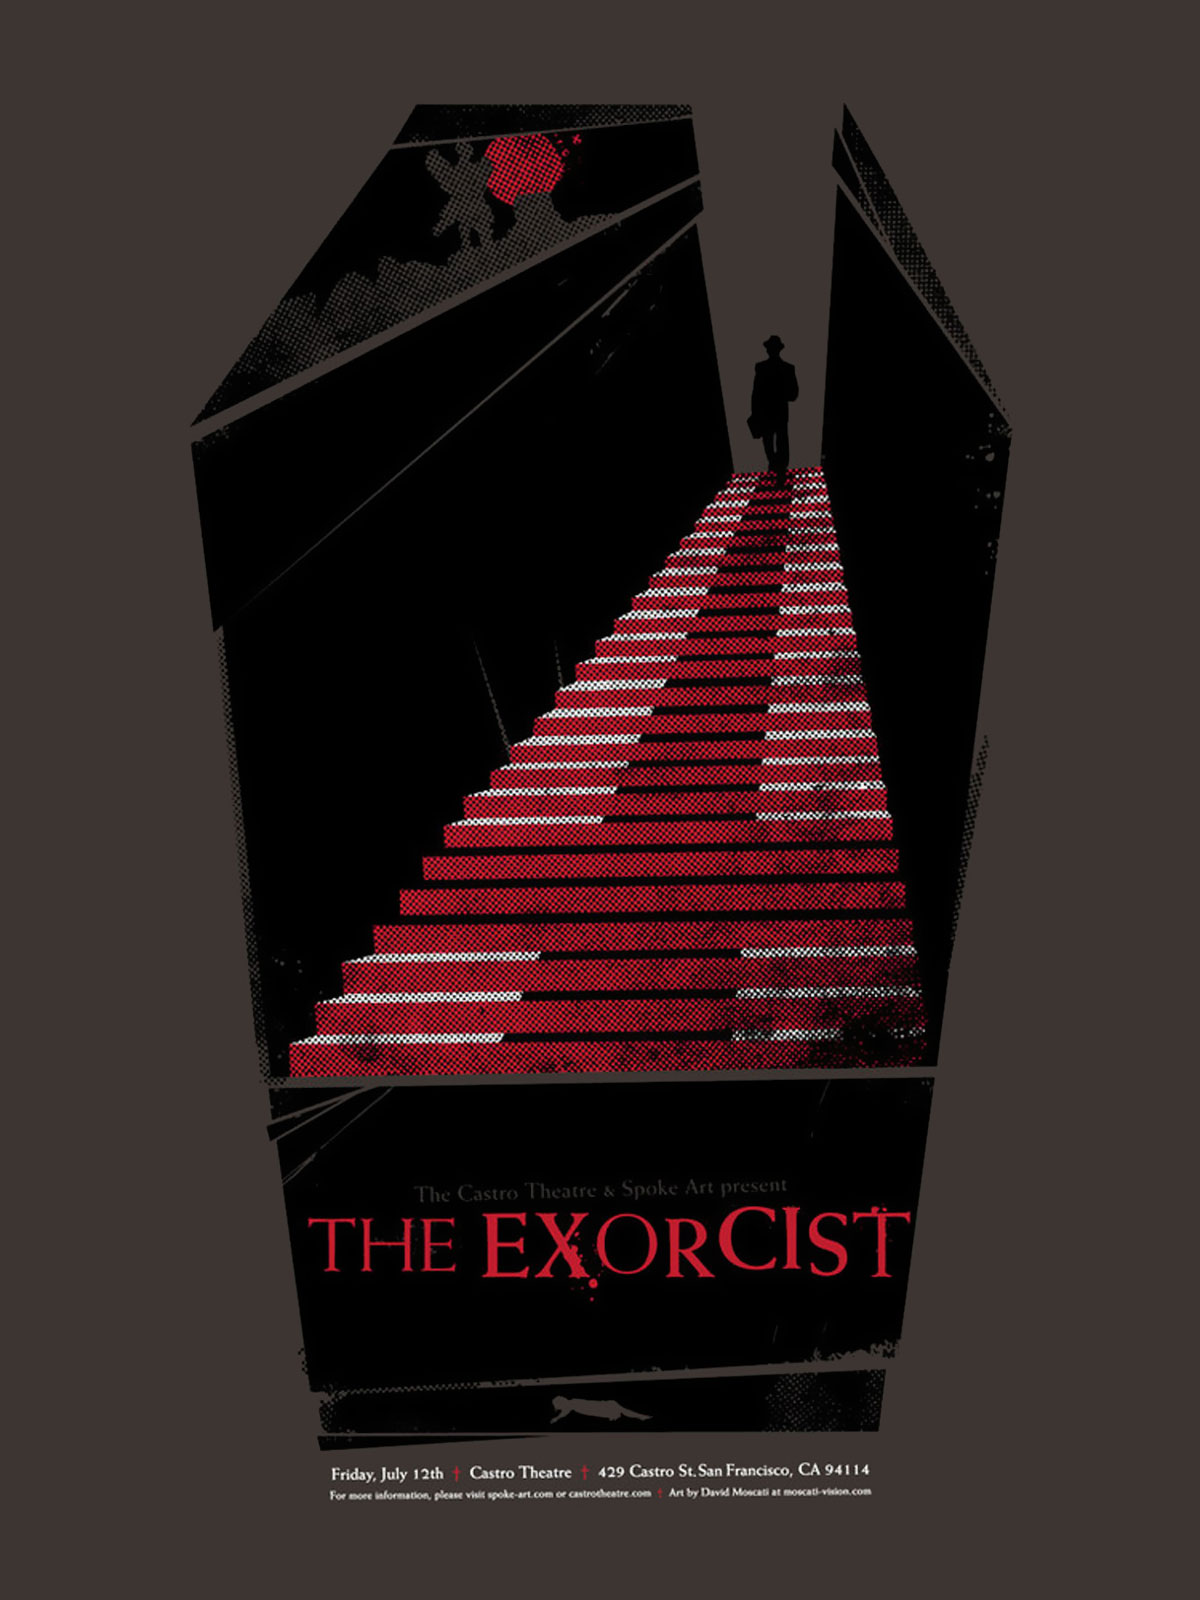 The Exorcist poster for The Castro Theatre screening